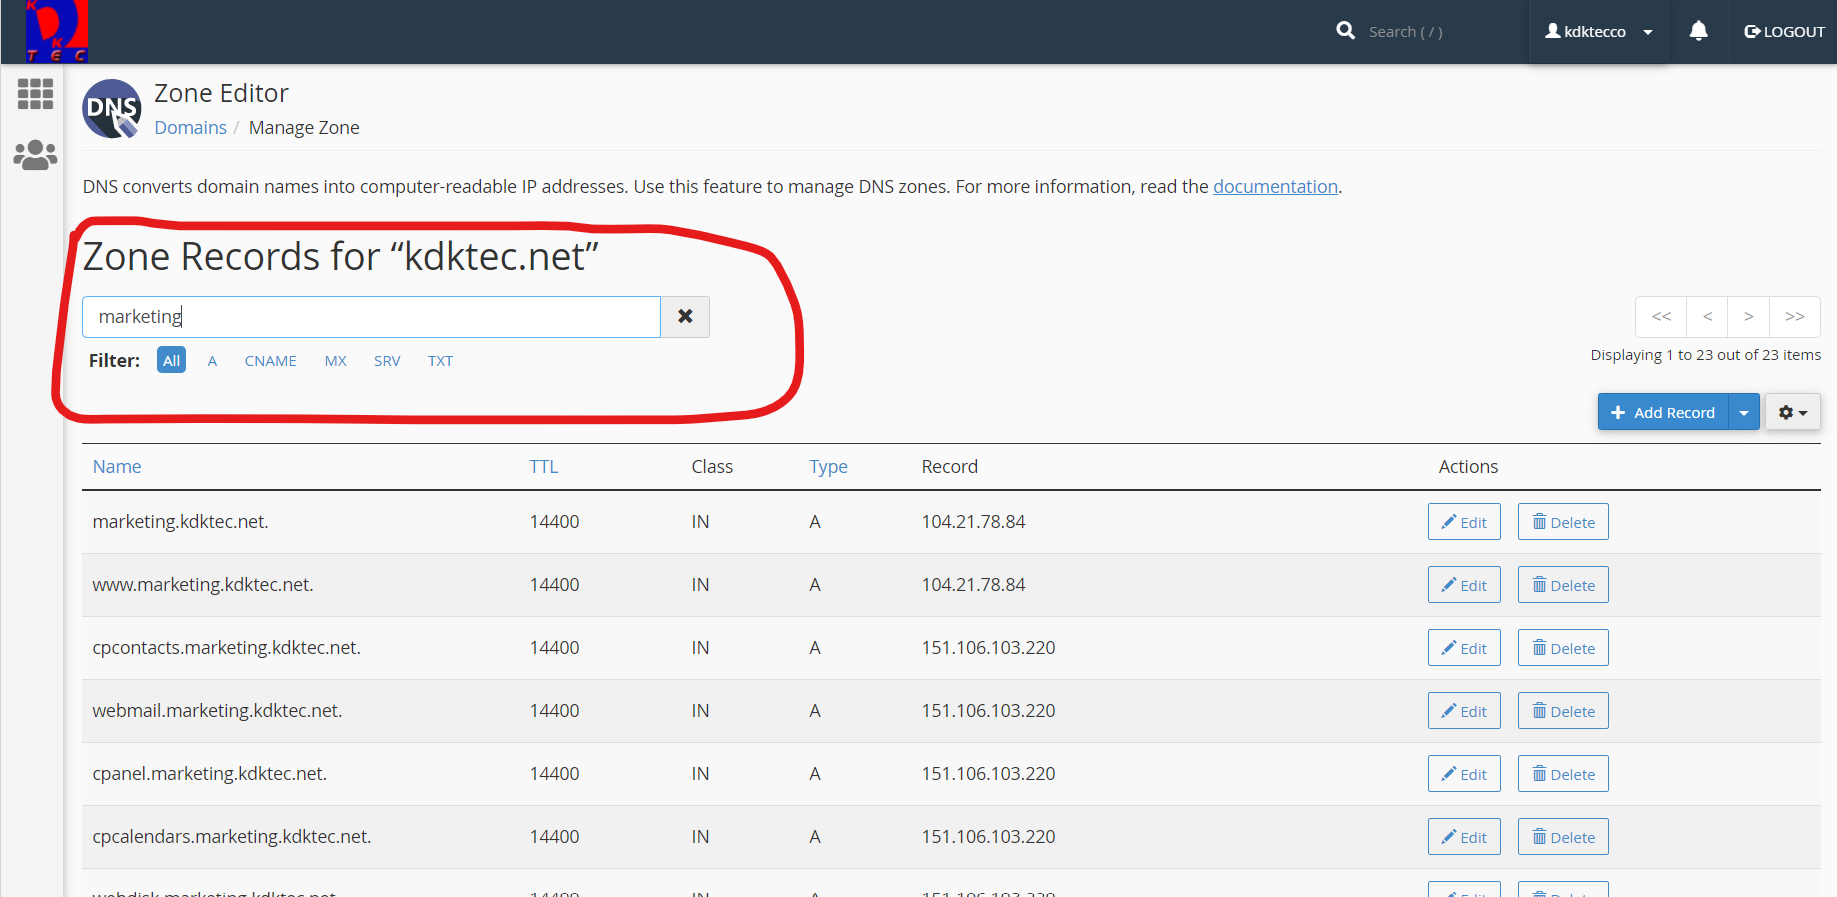 DNS Zone Editor domain search feature in cPanel